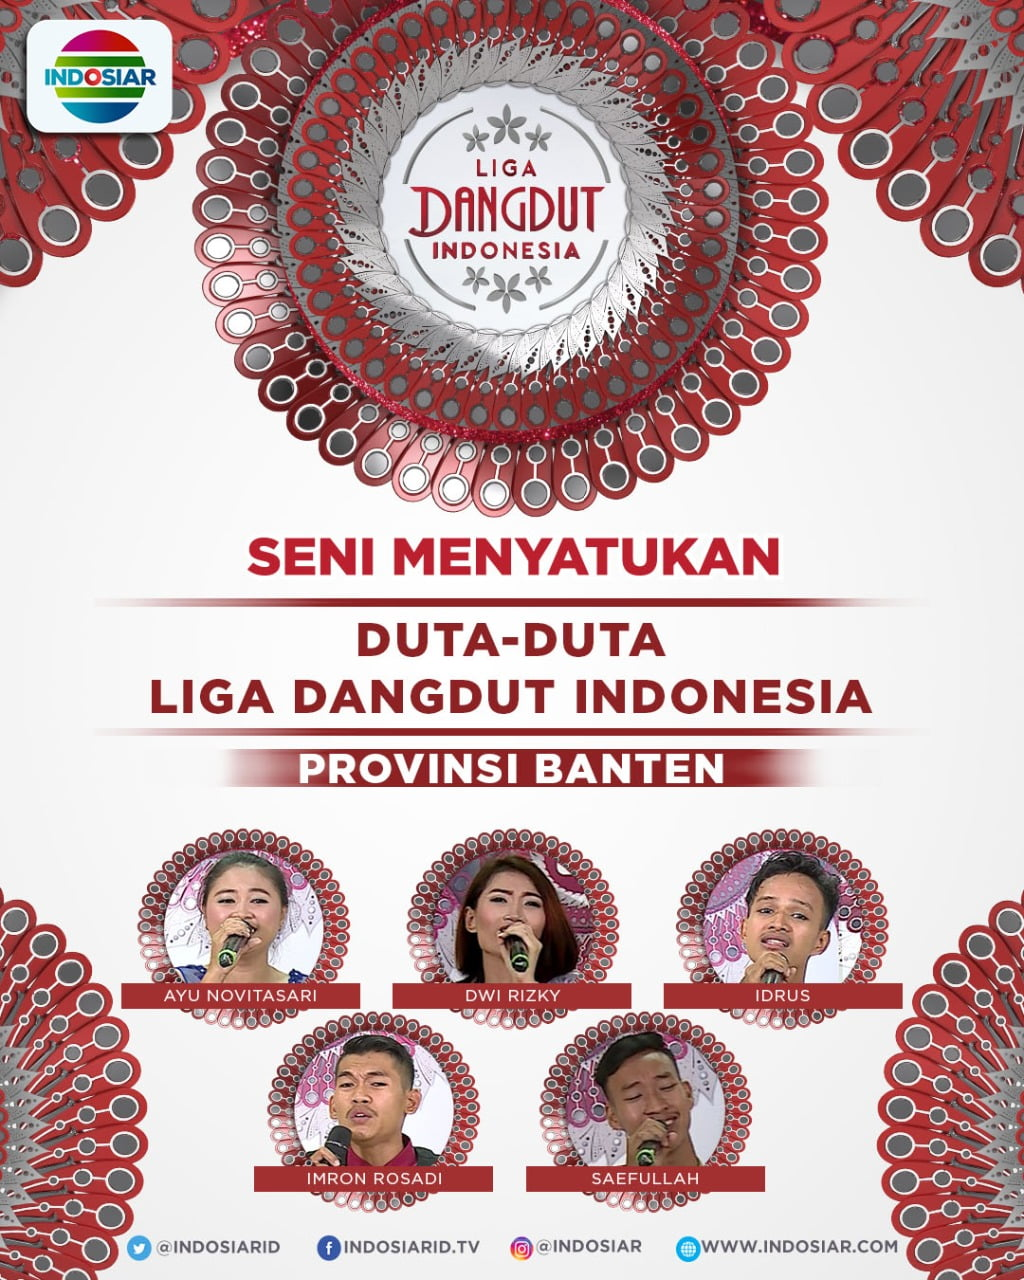 Liga Dangdut Indonesia